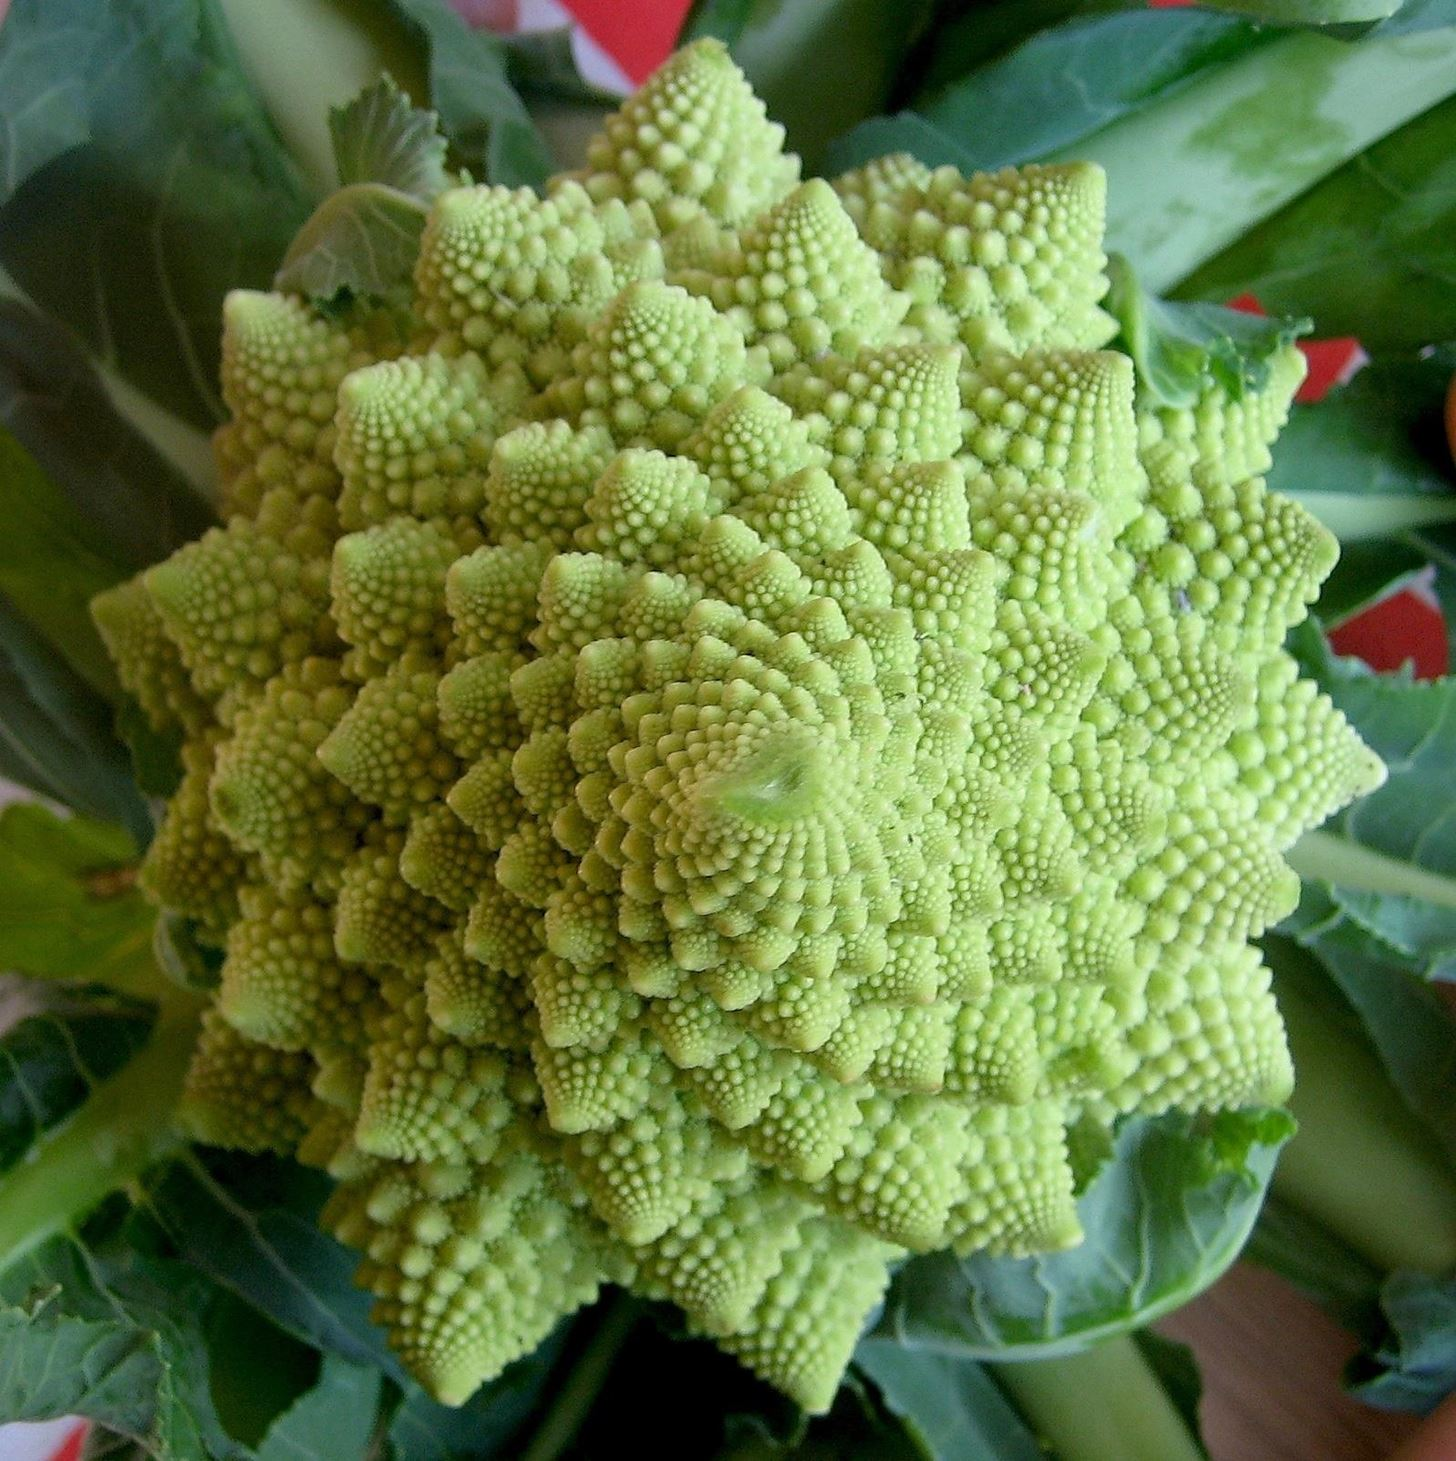 This Cauliflower Is Fractal-ly Delicious